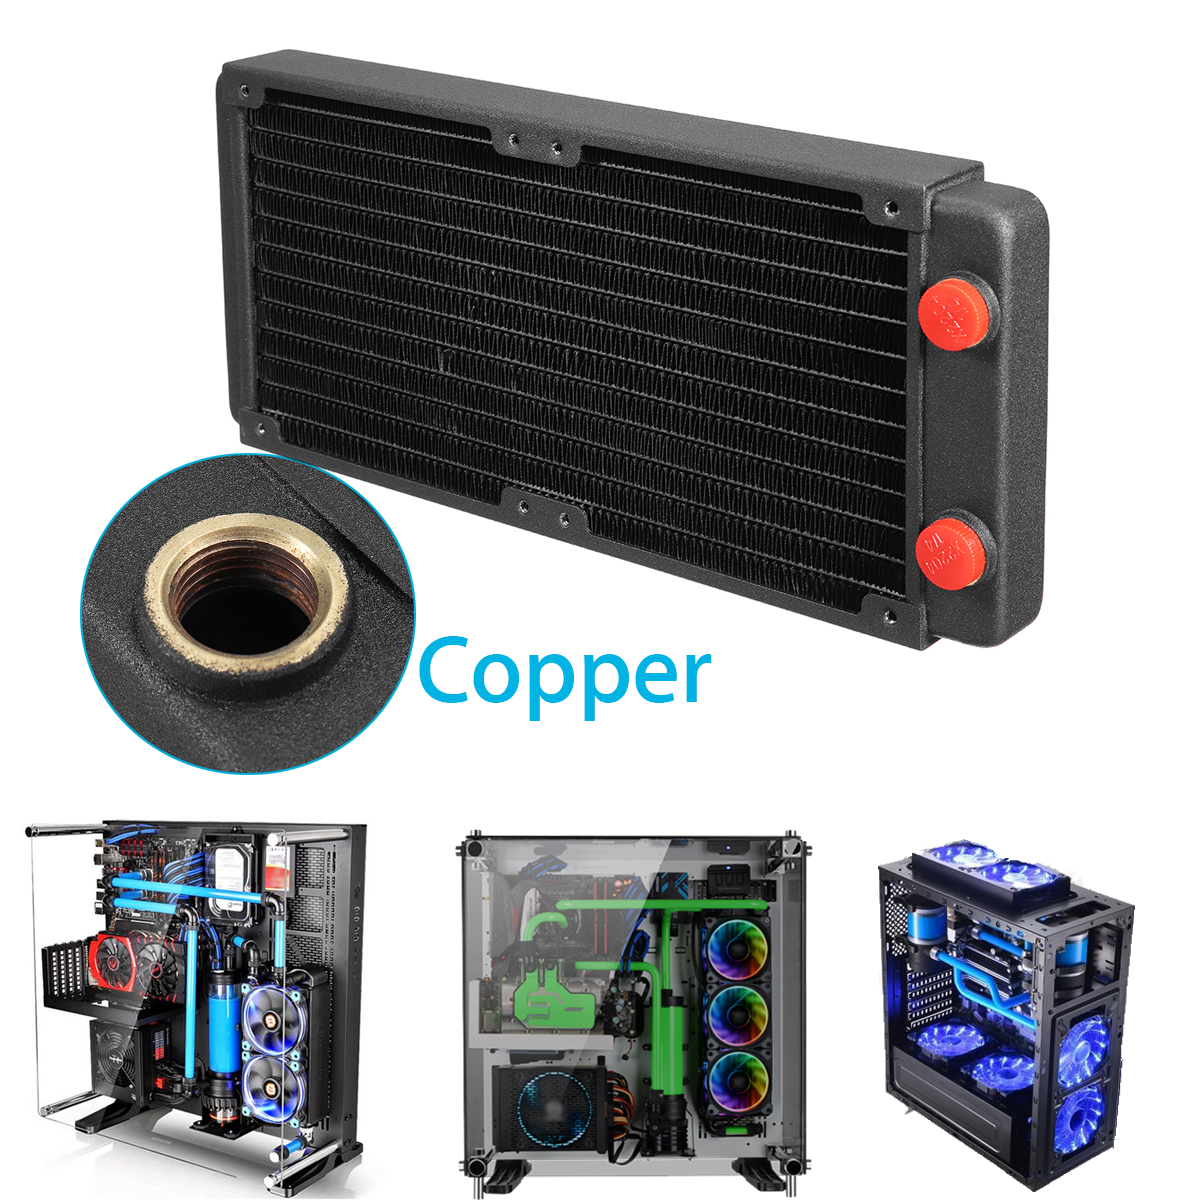 Copper Water Cooling 240mm Computer CPU Cooler Radiator Heatsink Radiator Exhaust Heat Exchanger Water Cooling Cooler magicool 140 ex slim 140mm copper radiator water cooler double fins coolgate hd